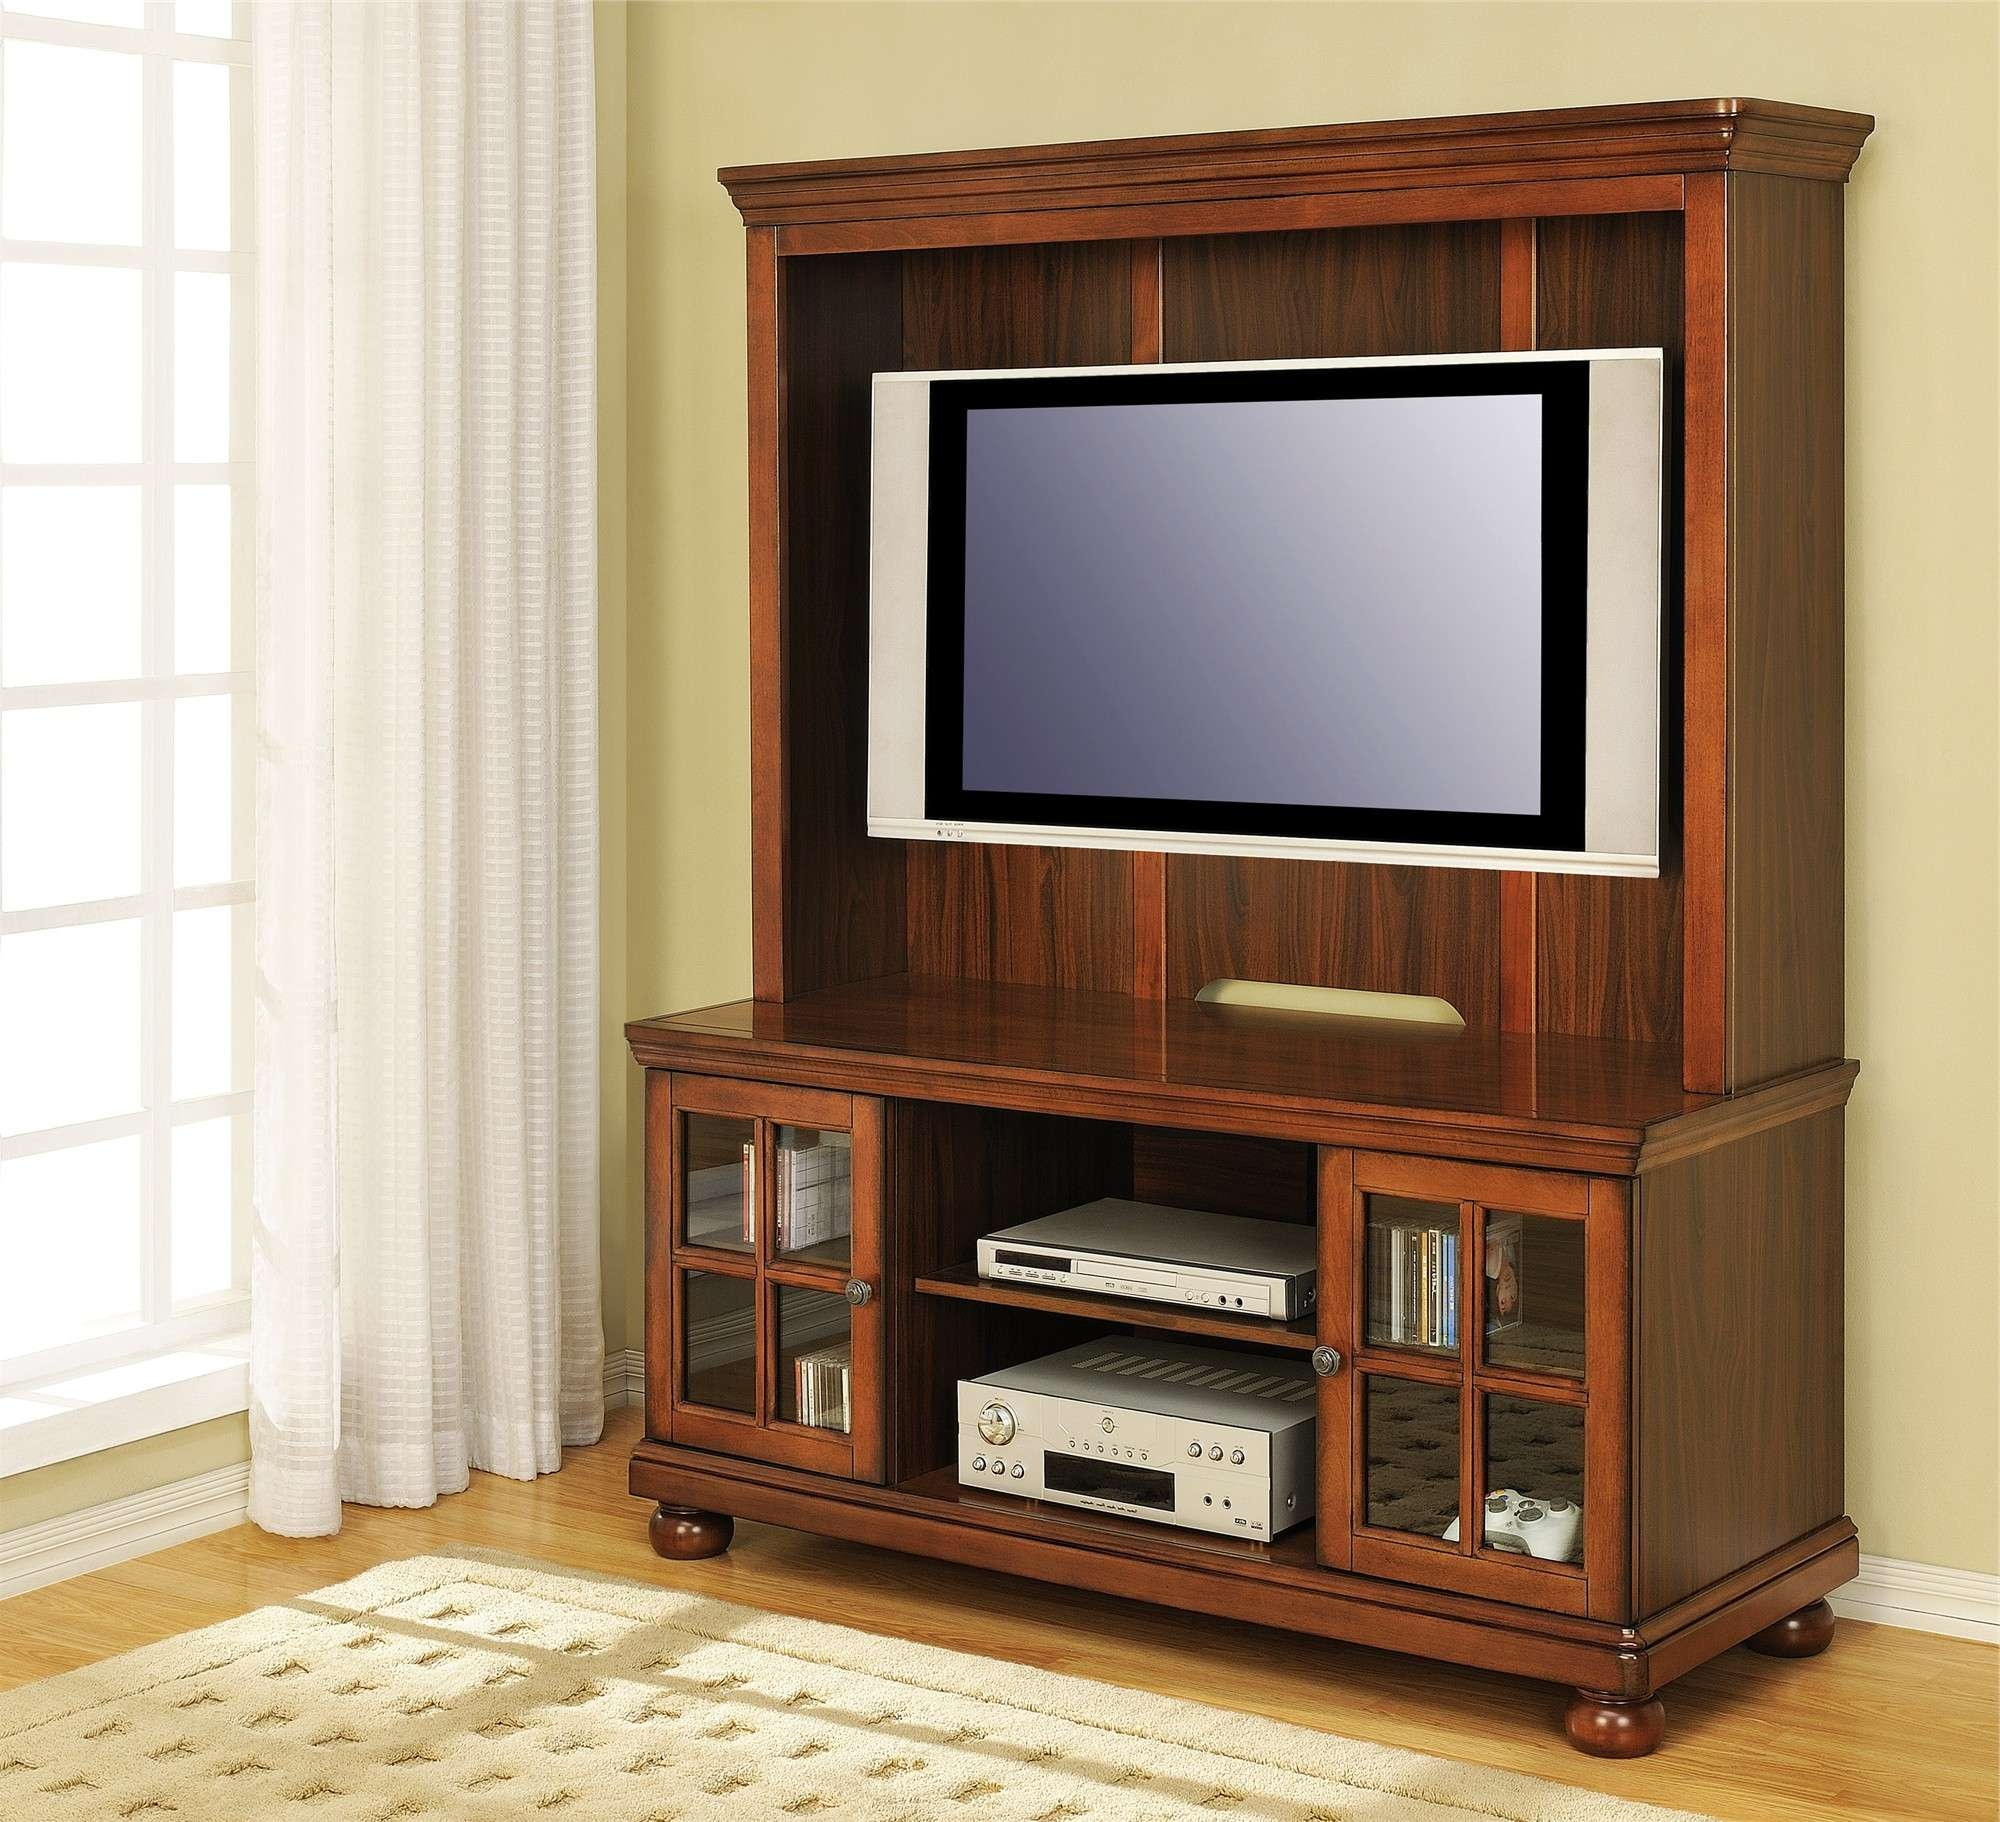 Modern Brown Oak Wood Media Cabinet With Mounted Tv Storage With Regard To Tv Cabinets (View 13 of 20)